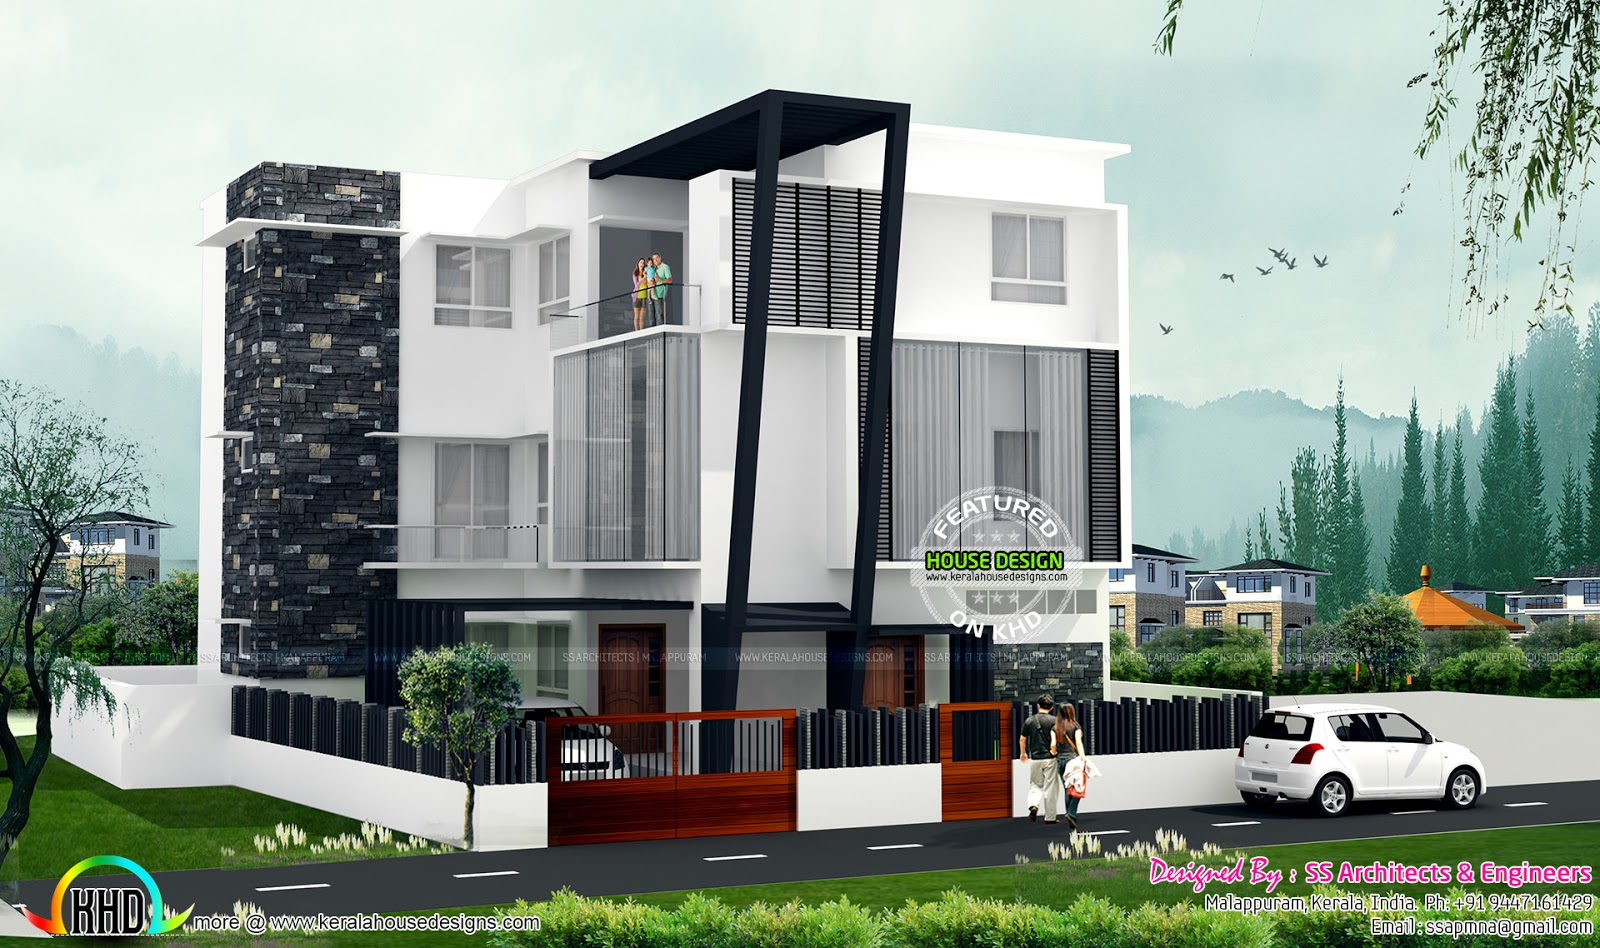 Multi purpose home design kerala home design and floor plans for Multi purpose building plans